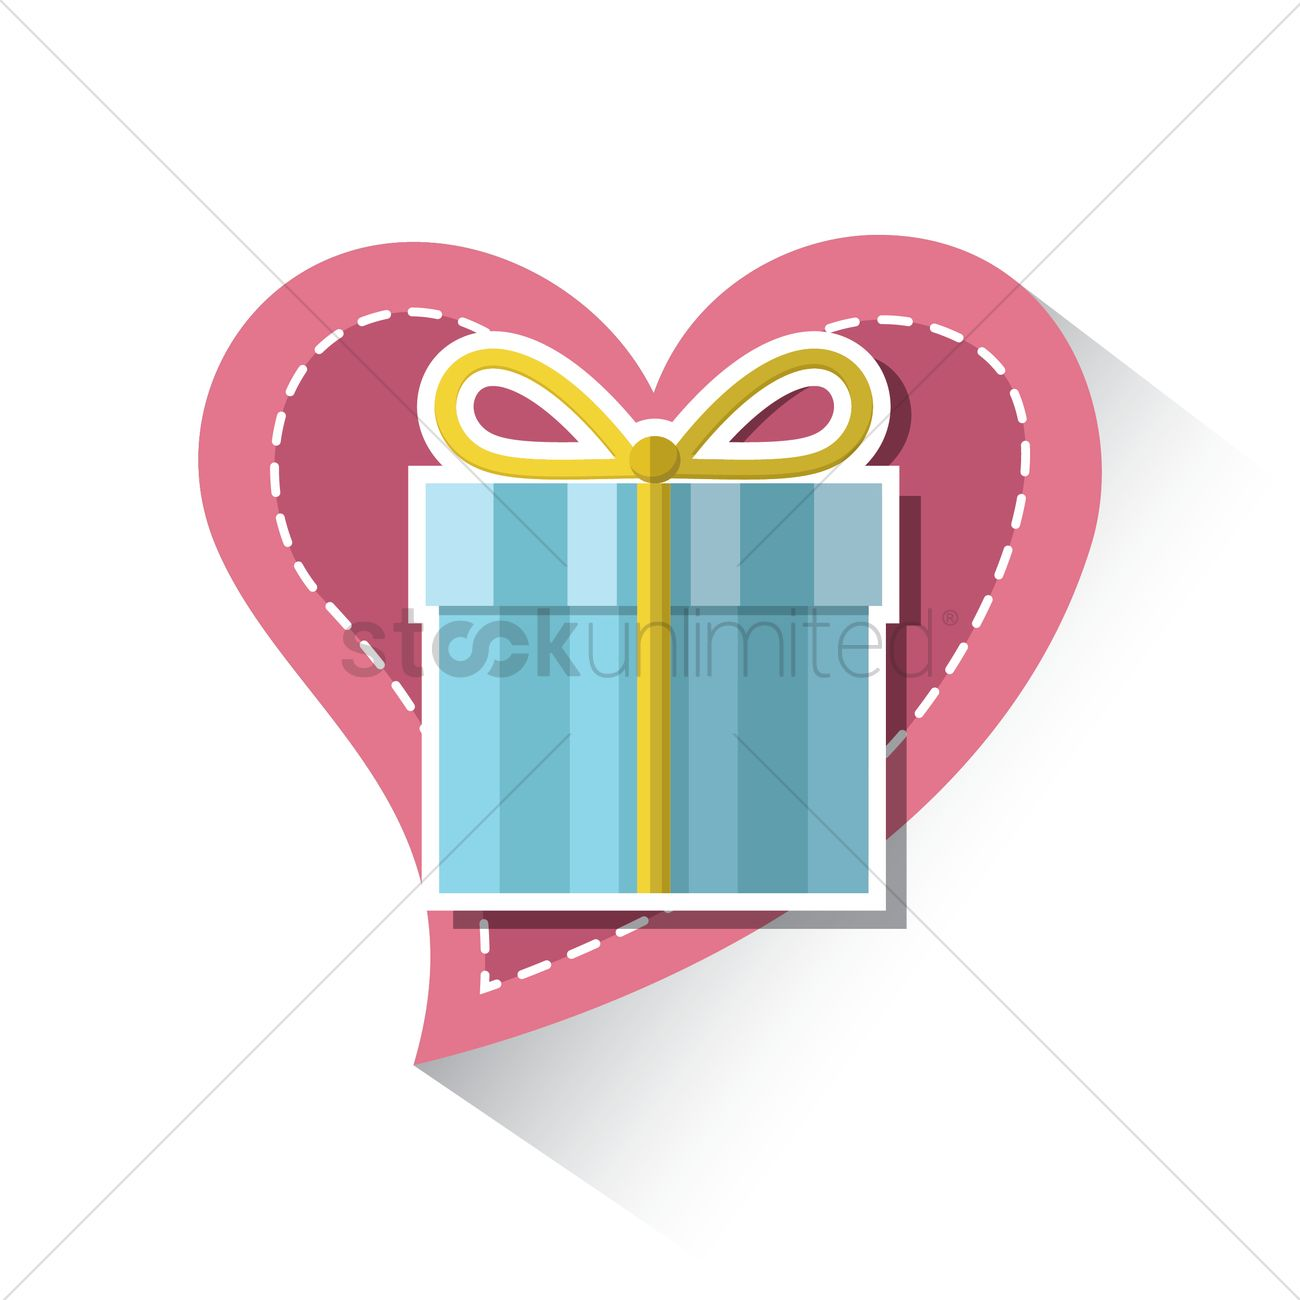 Valentine Gift Pack Vector Image 1491408 Stockunlimited